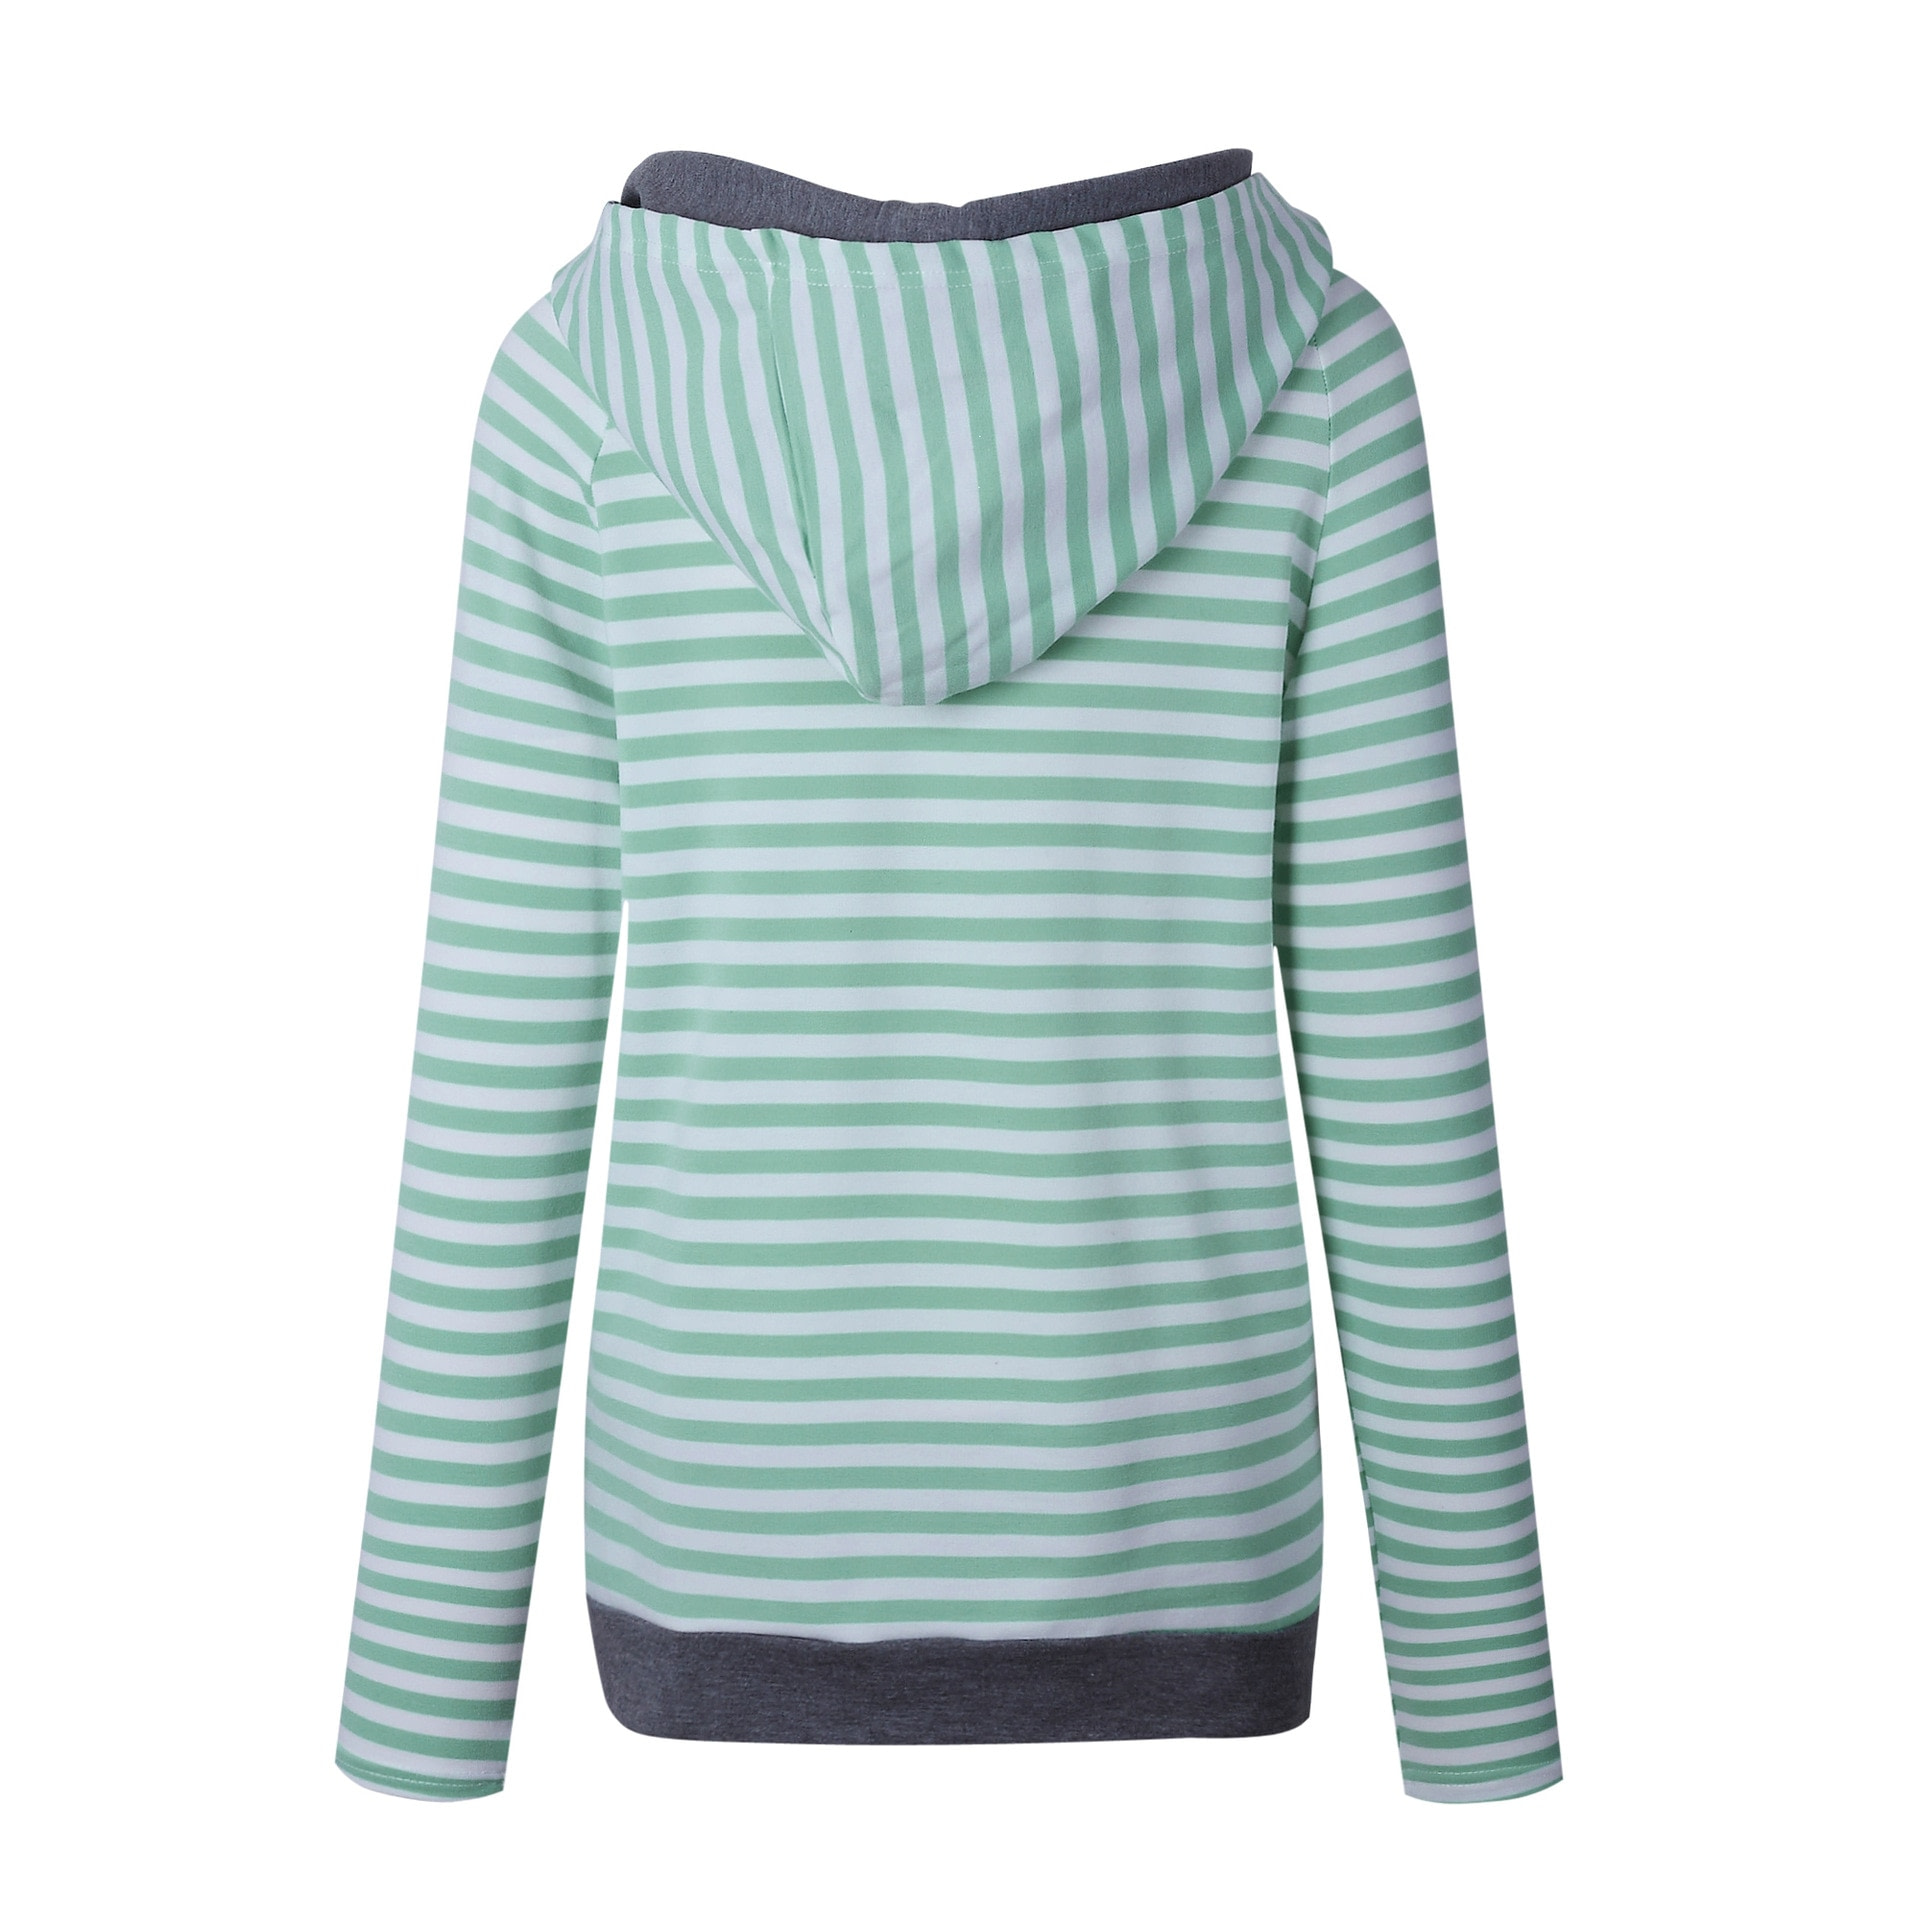 Women's Patchwork Striped Pullover Long Sleeve Hoodie, Tops With Pockets, Hooded Sweatshirt 10